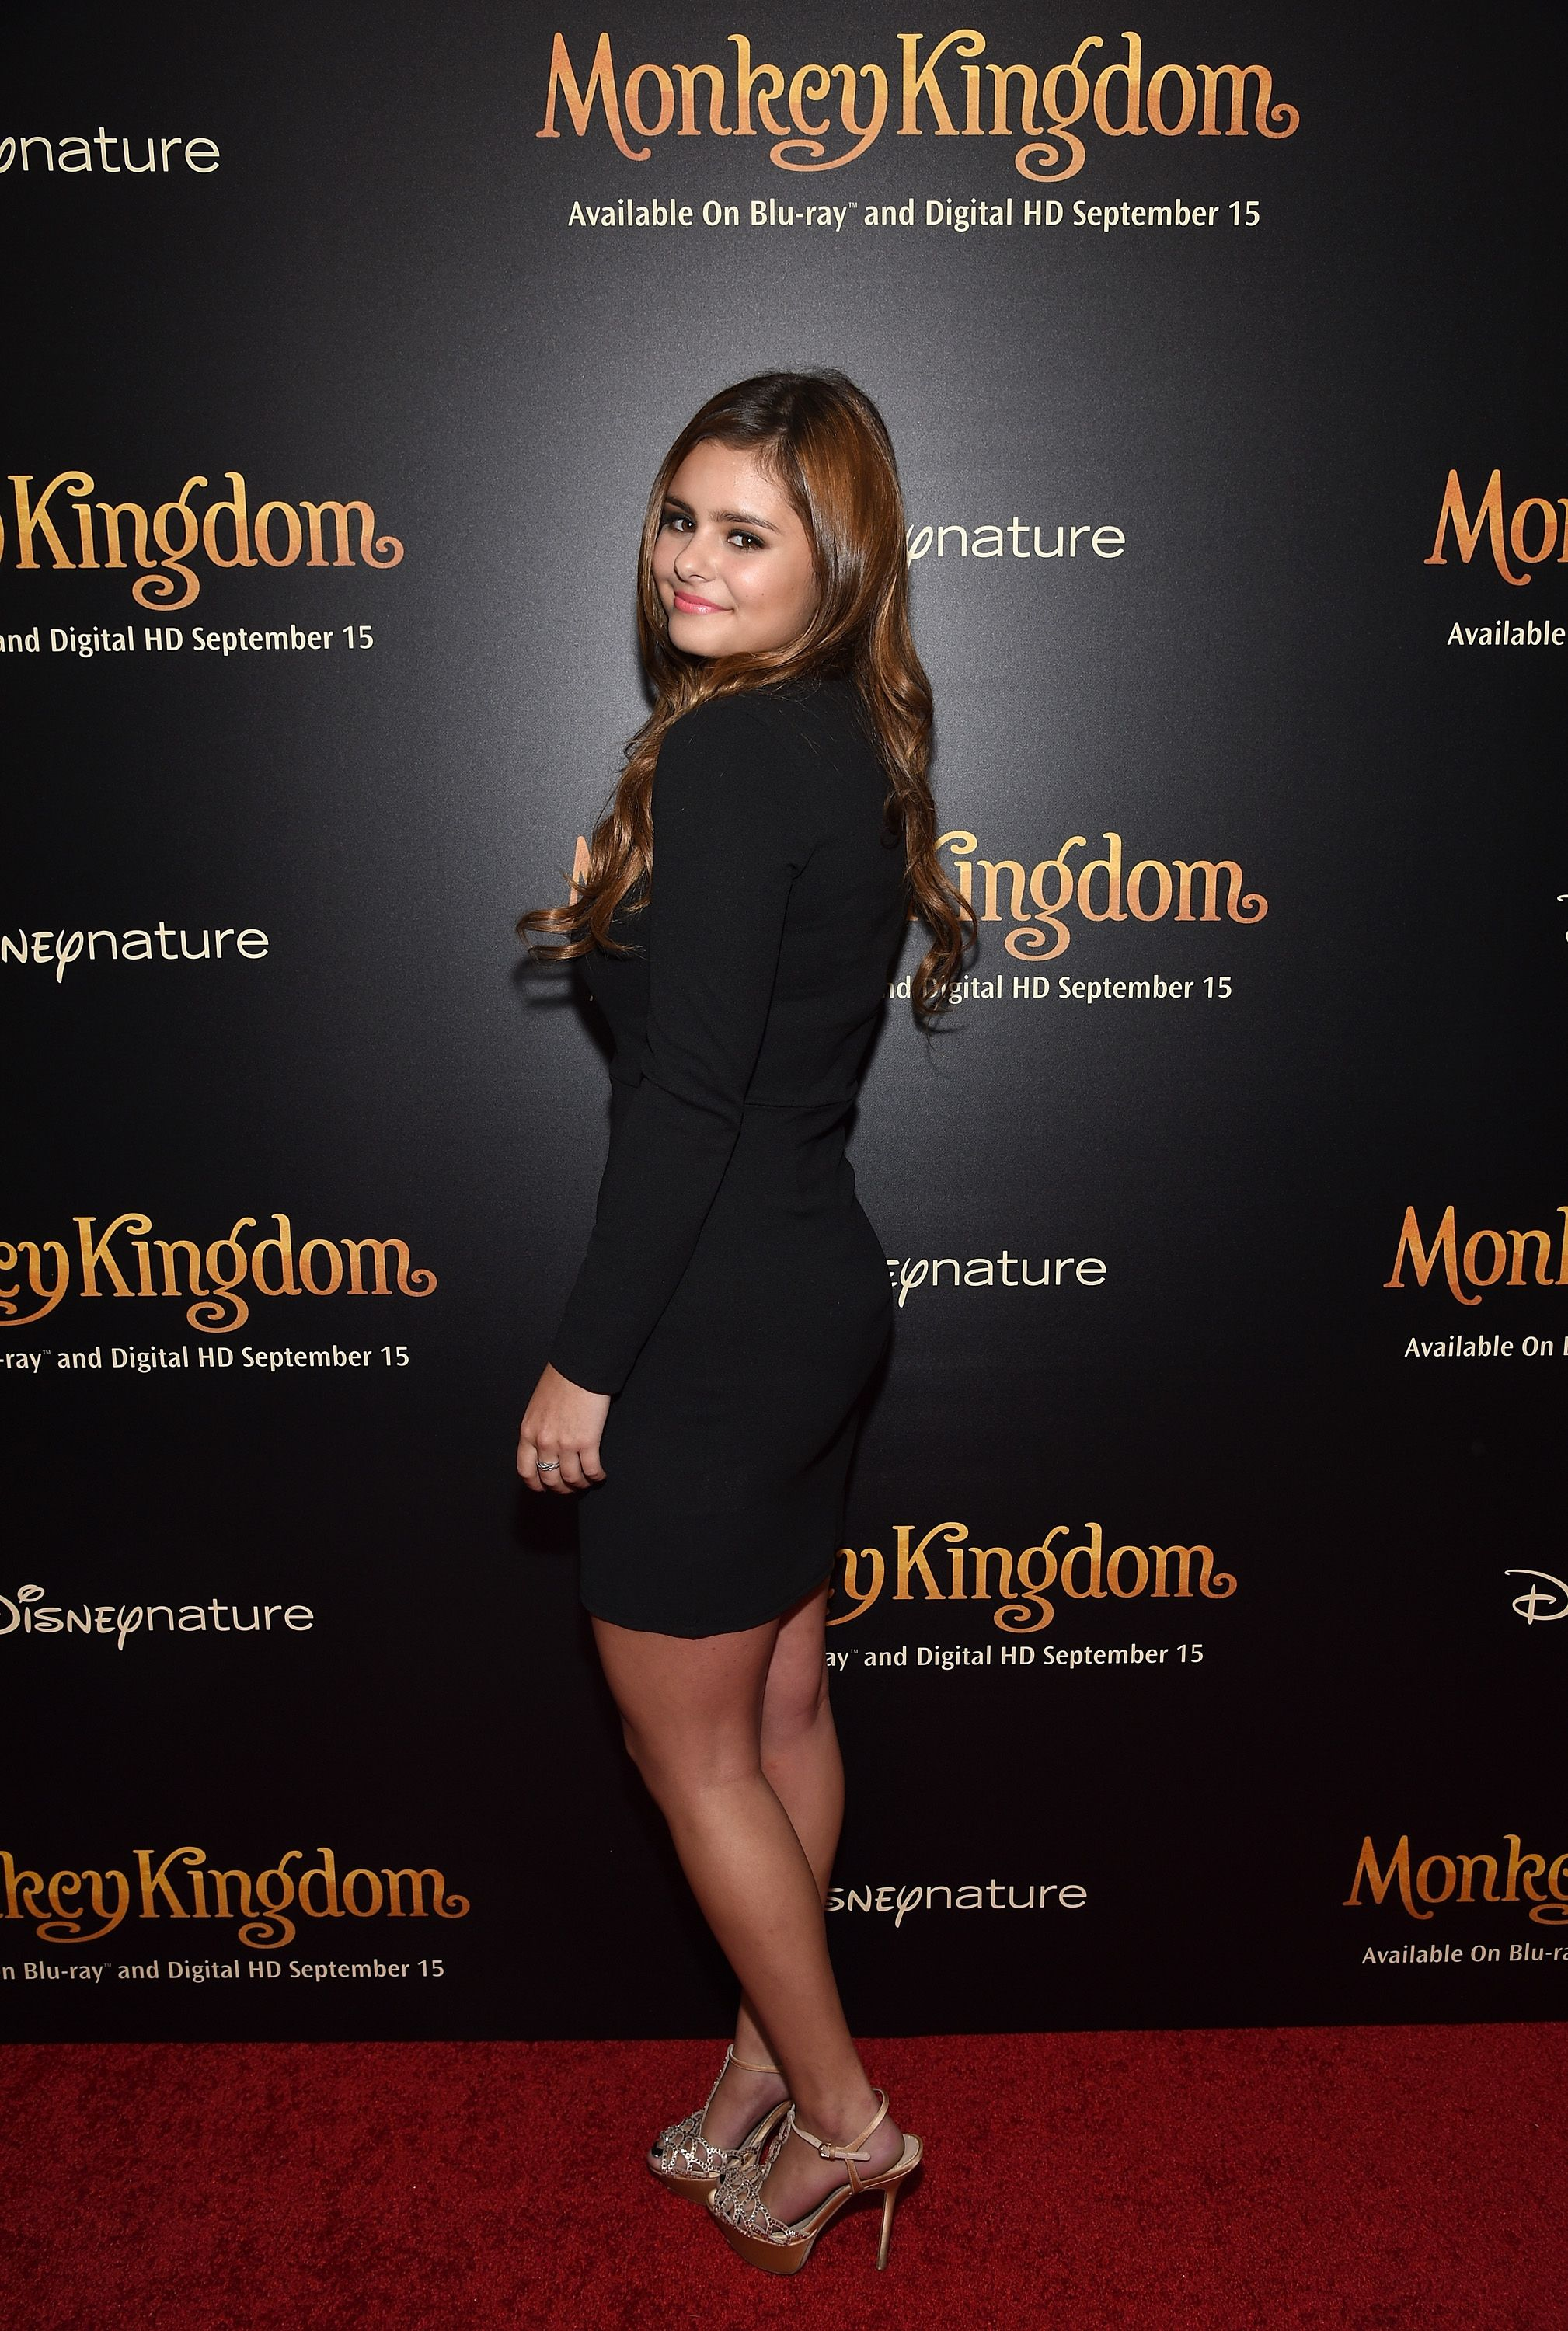 Jacquie Lee attends Disneynature's Monkey Kingdom special screening celebrating the film's September15th Blu-ray / Digital HD release on September 2, 2015 in New York City.